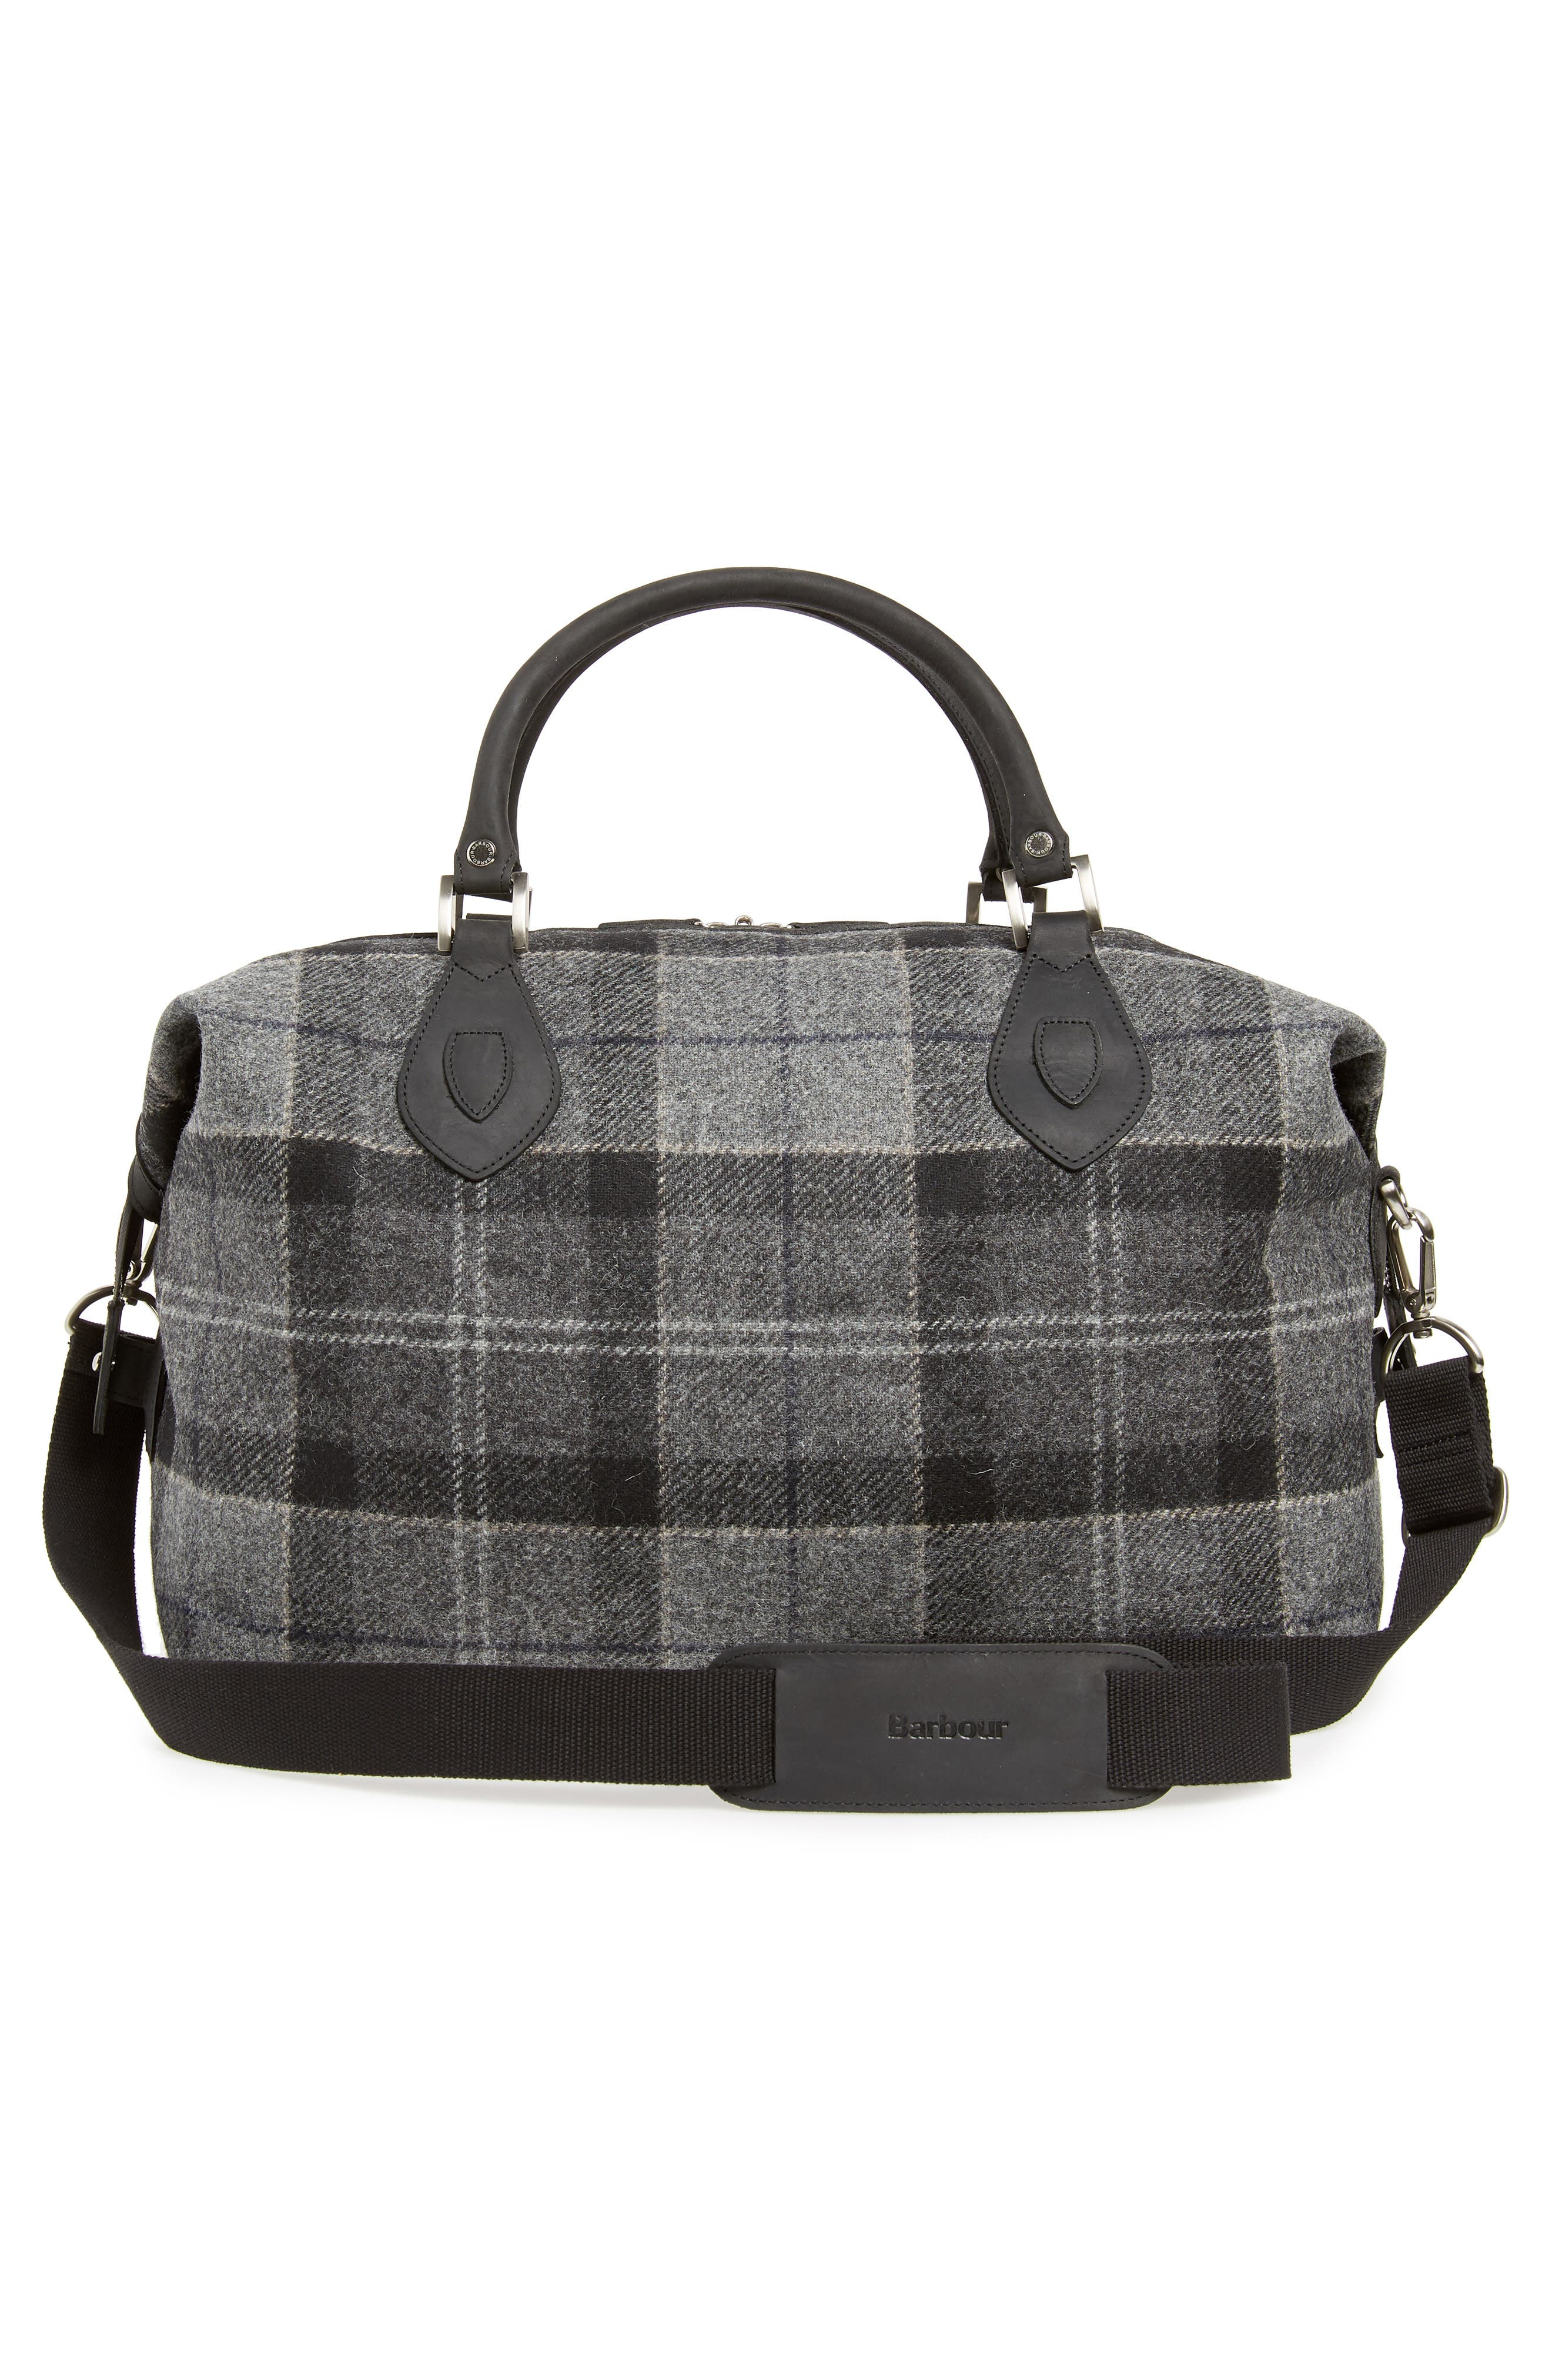 Shadow Duffel Bag,                             Alternate thumbnail 3, color,                             BLACK/ GREY TARTAN